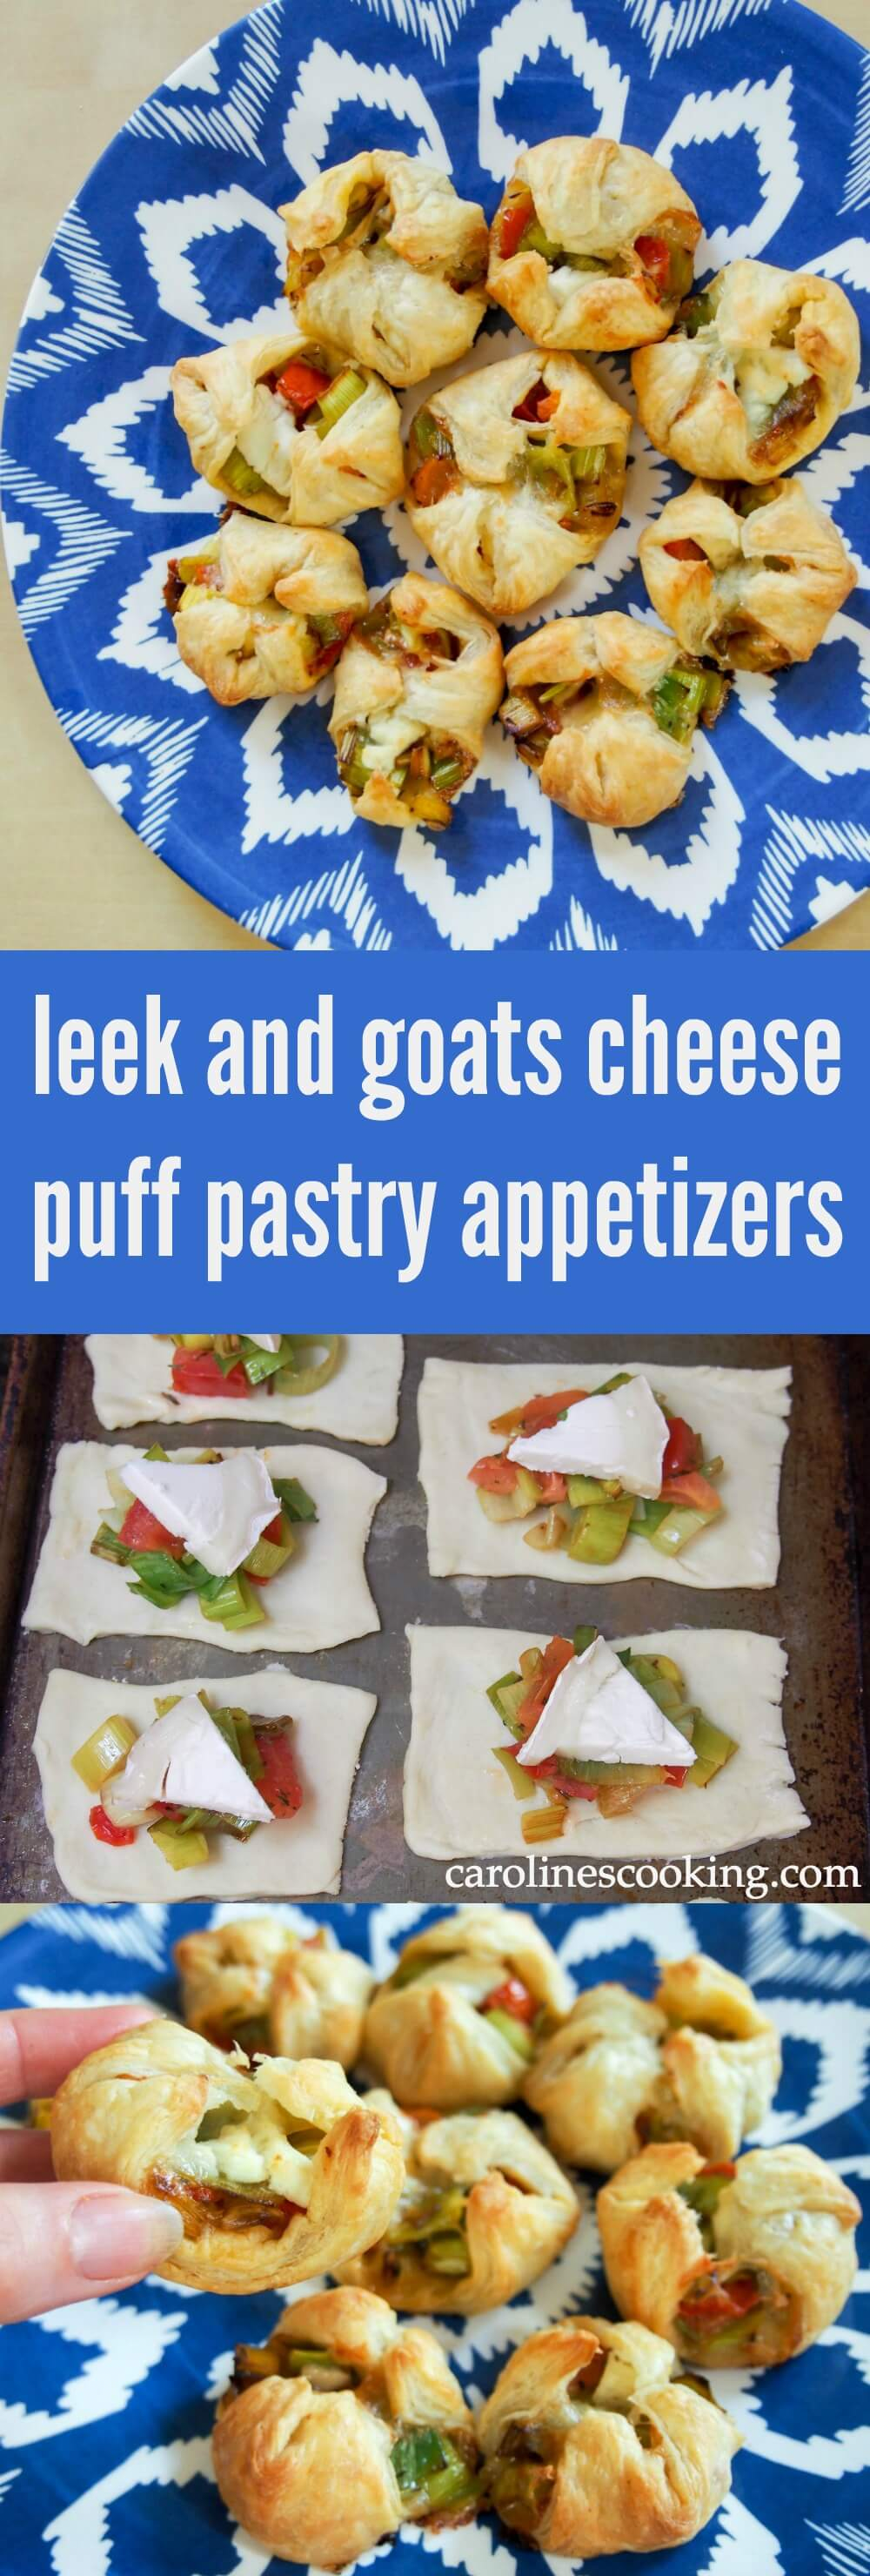 These simple puff pastry appetizers are so quick and easy to make but look great and taste delicious. Perfect party food.